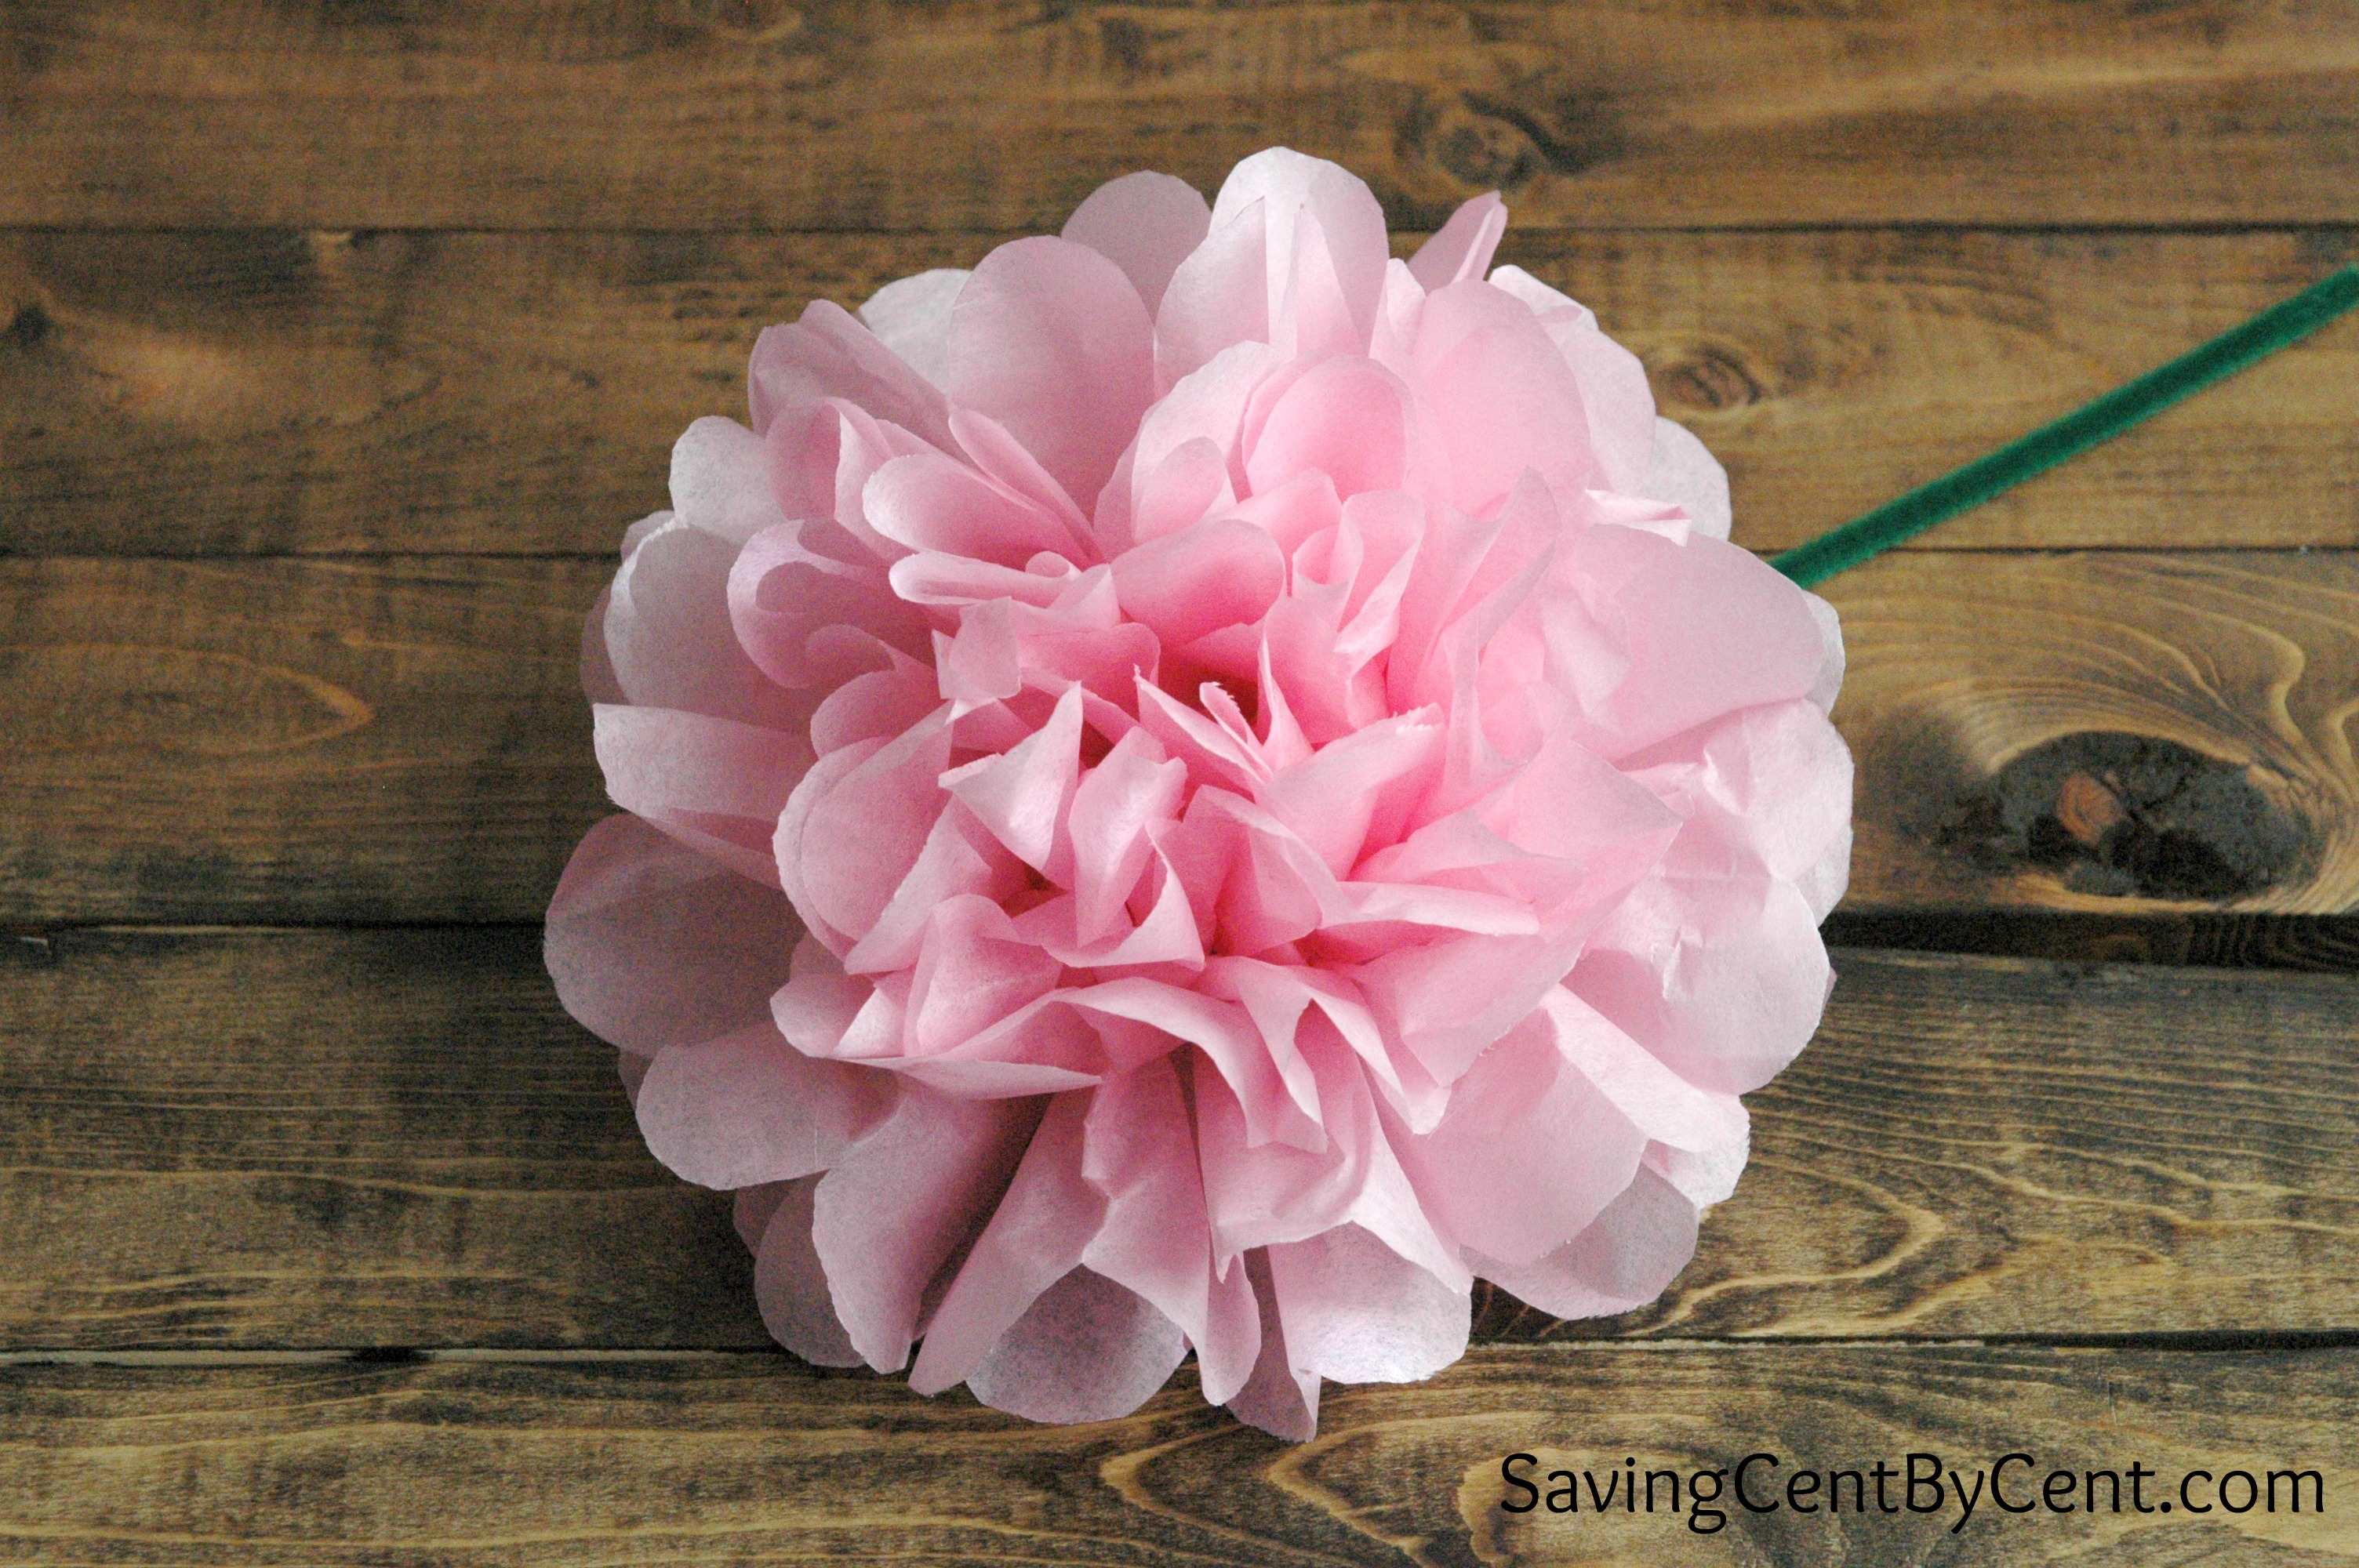 How to Make Easy Tissue Paper Flowers - Saving Cent by Cent